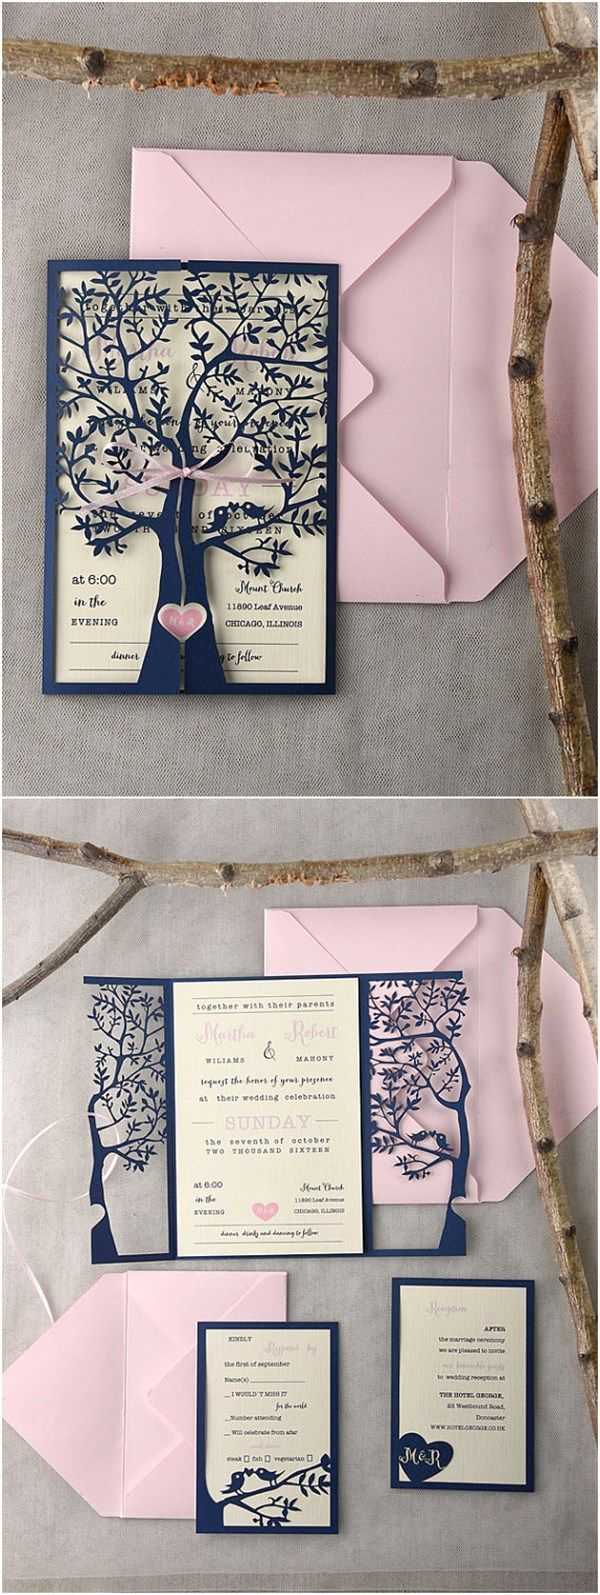 sending wedding invitations months before%0A Rustic Laser Cut Tree Pink Navy Wedding Invitations  I think if you change  from wedding to my family tree is growing that it could be cute